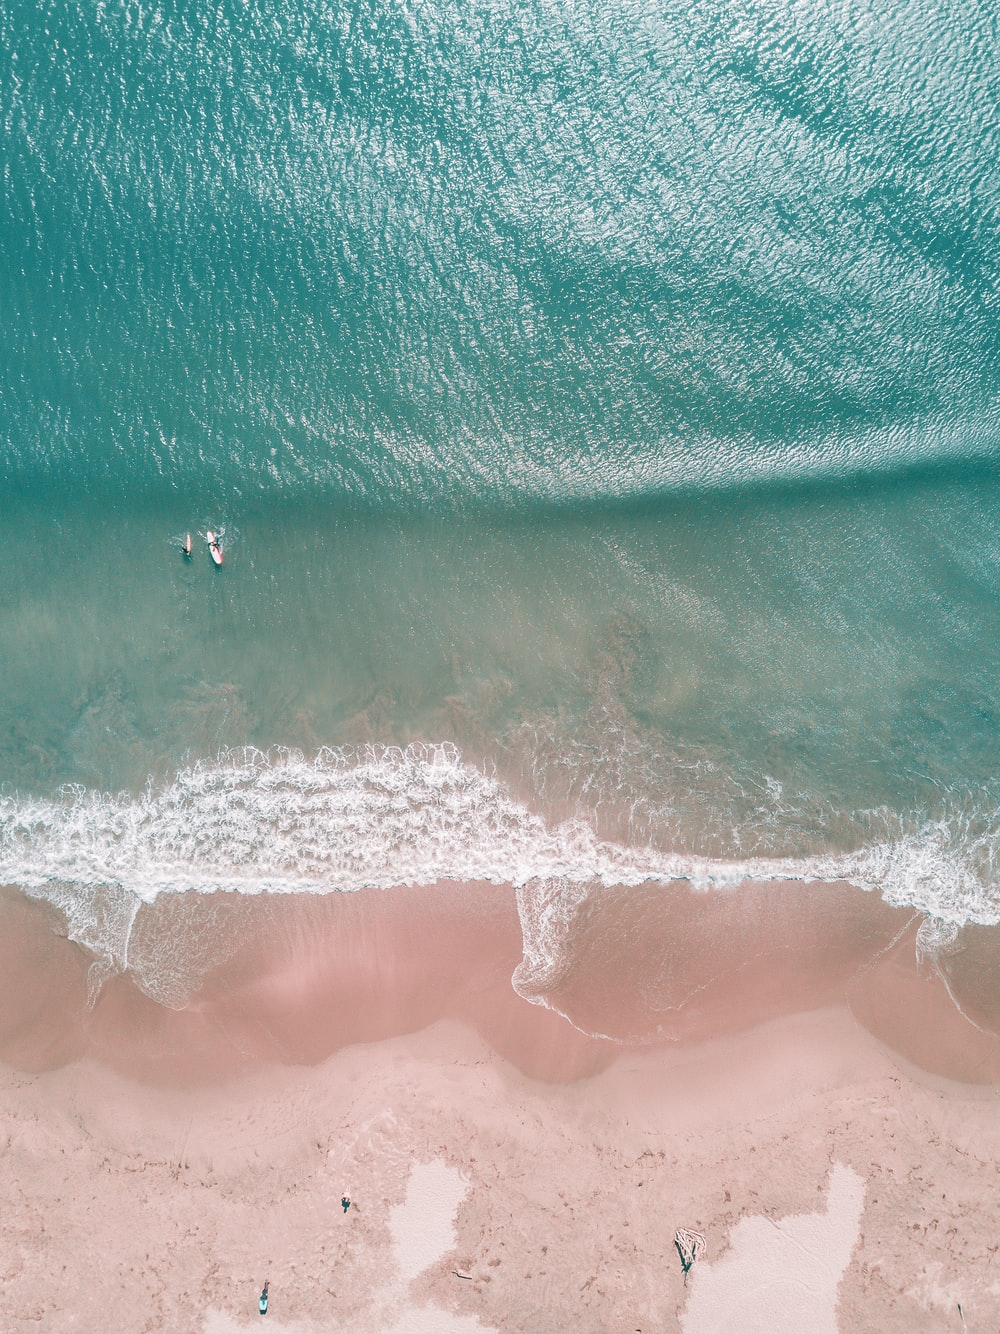 aerial photography of people surfing on seashore during daytime